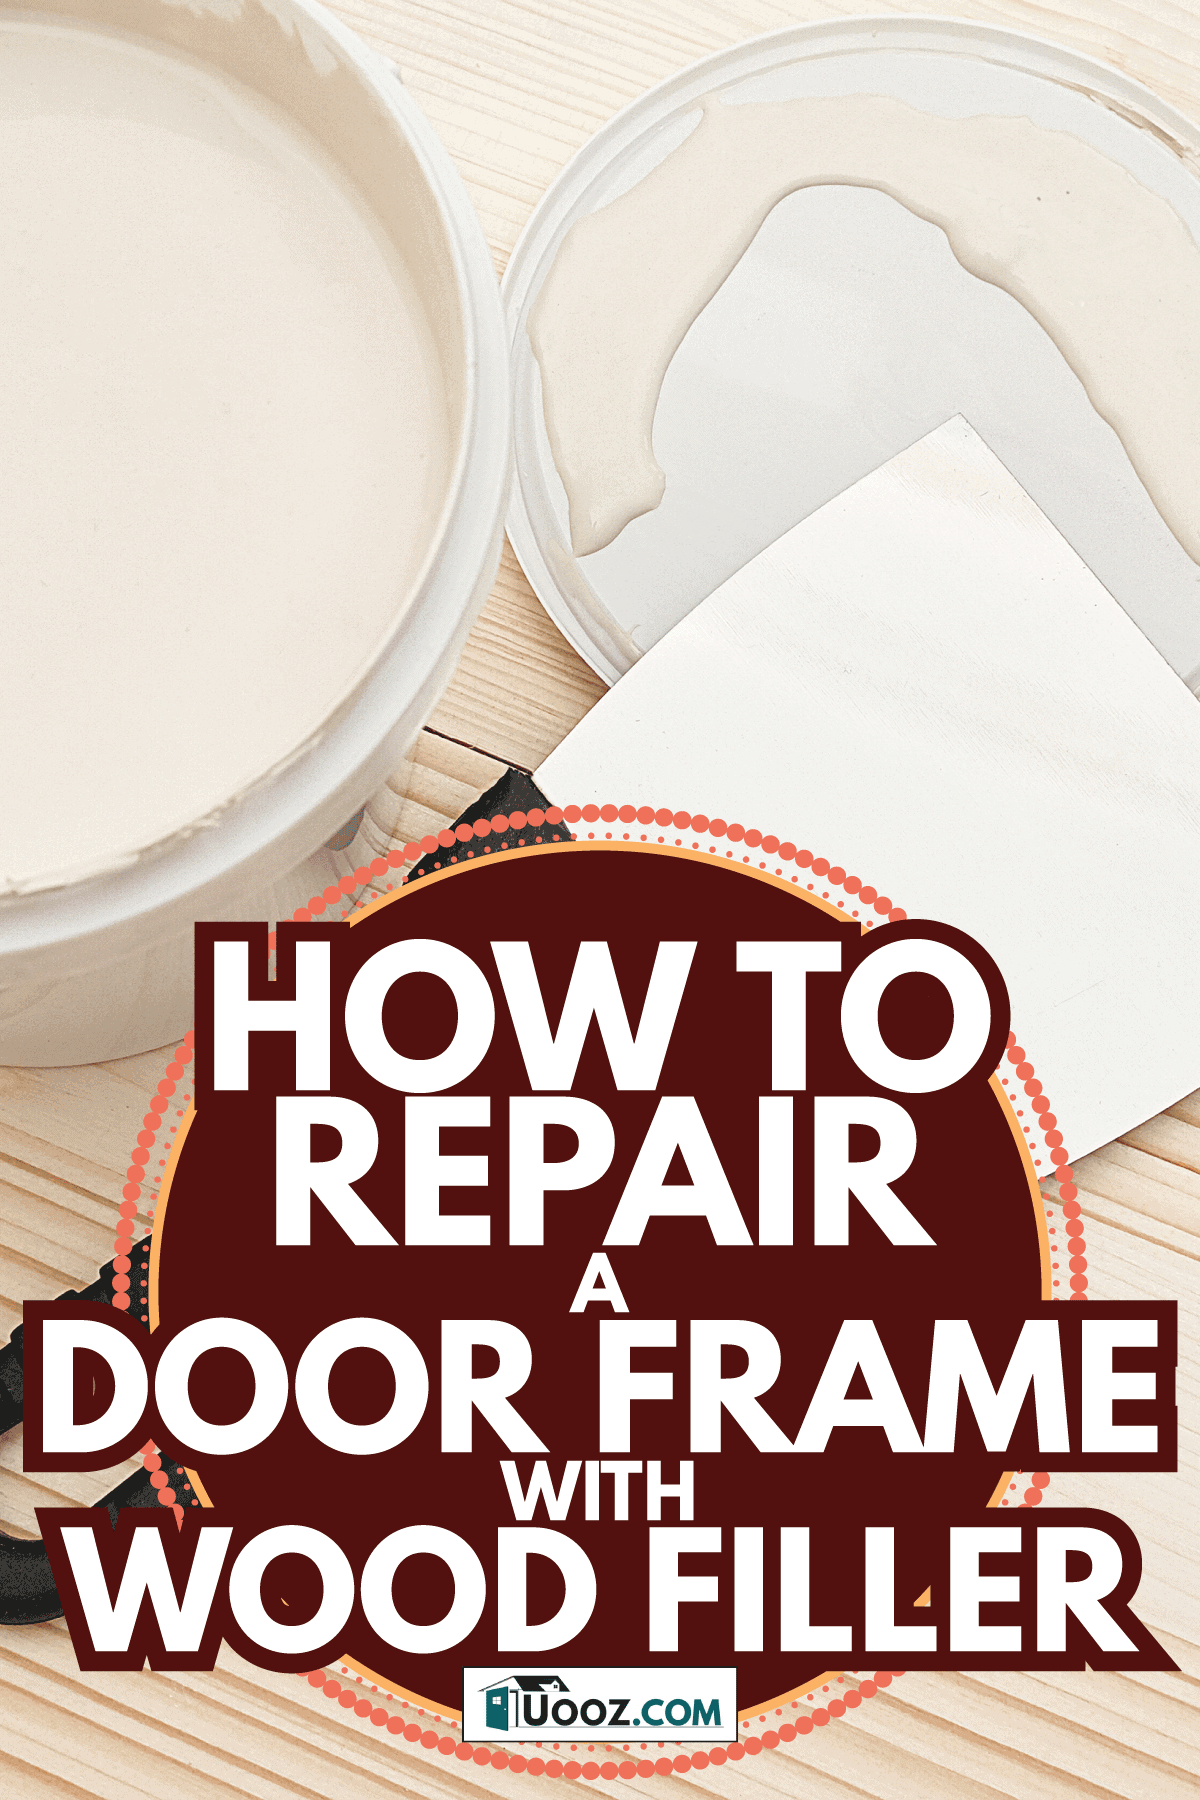 Spatula and a bucket of white putty on wooden boards. How To Repair A Door Frame With Wood Filler